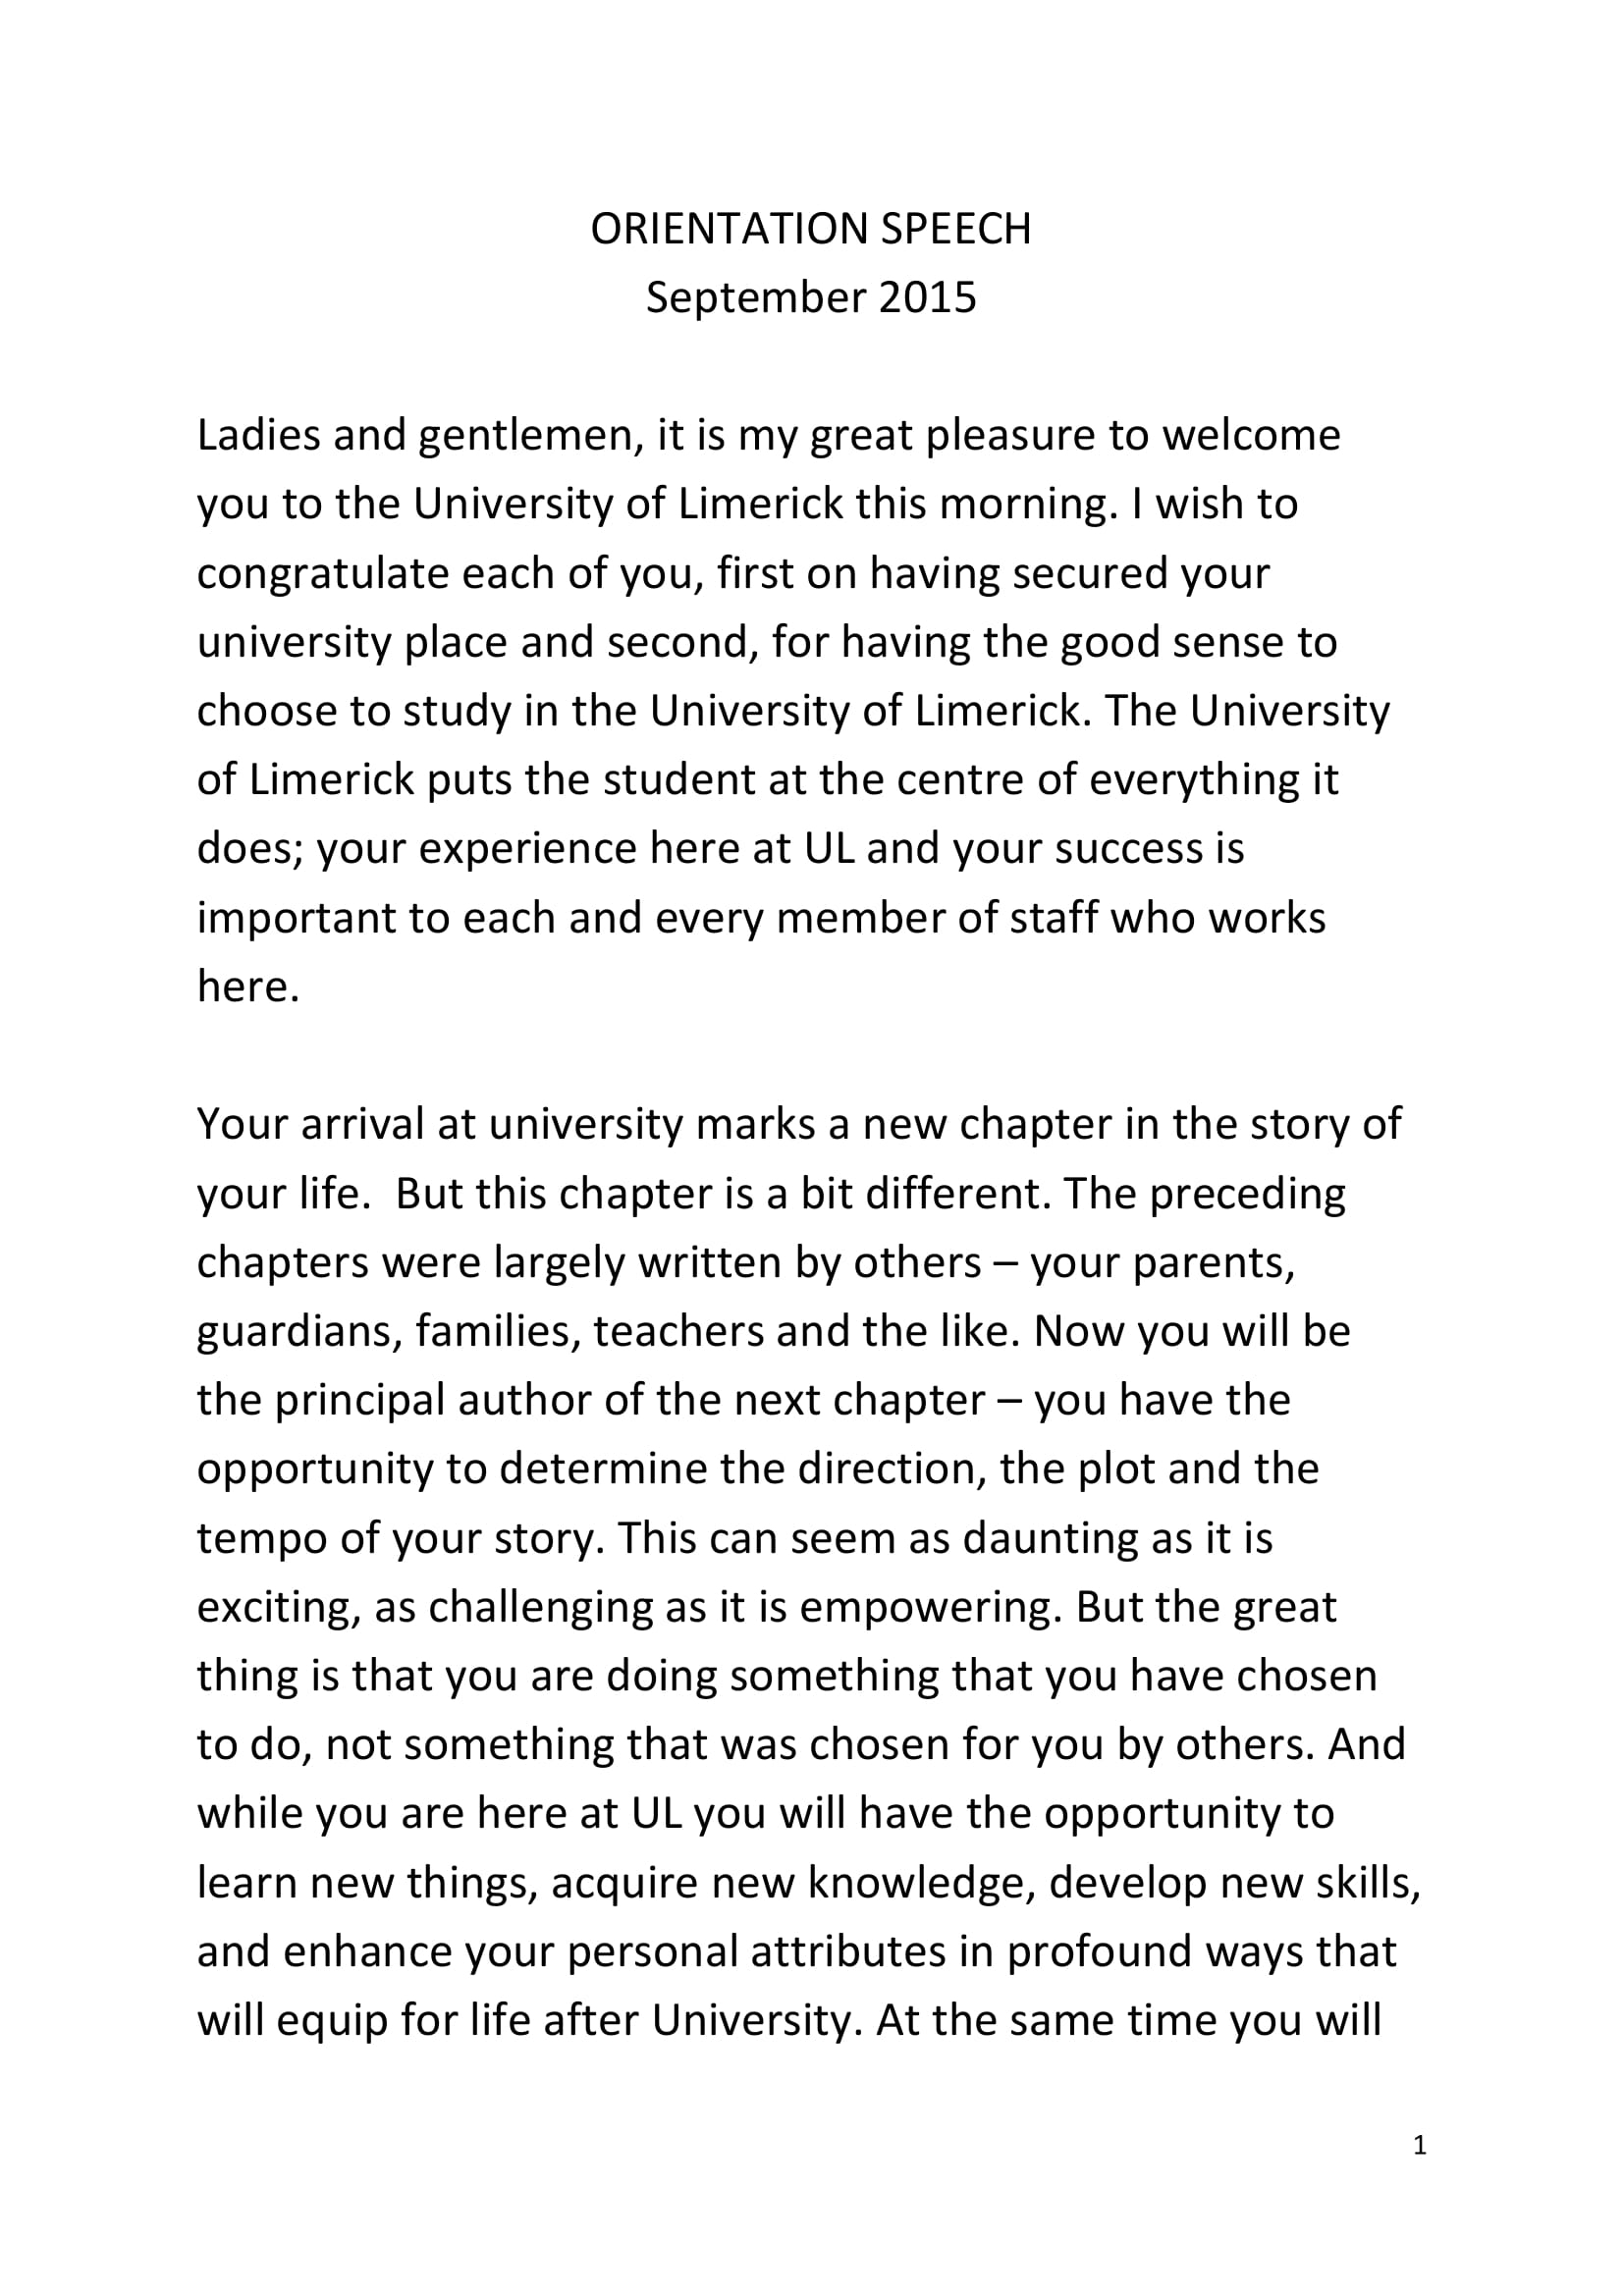 orientation welcome speech example